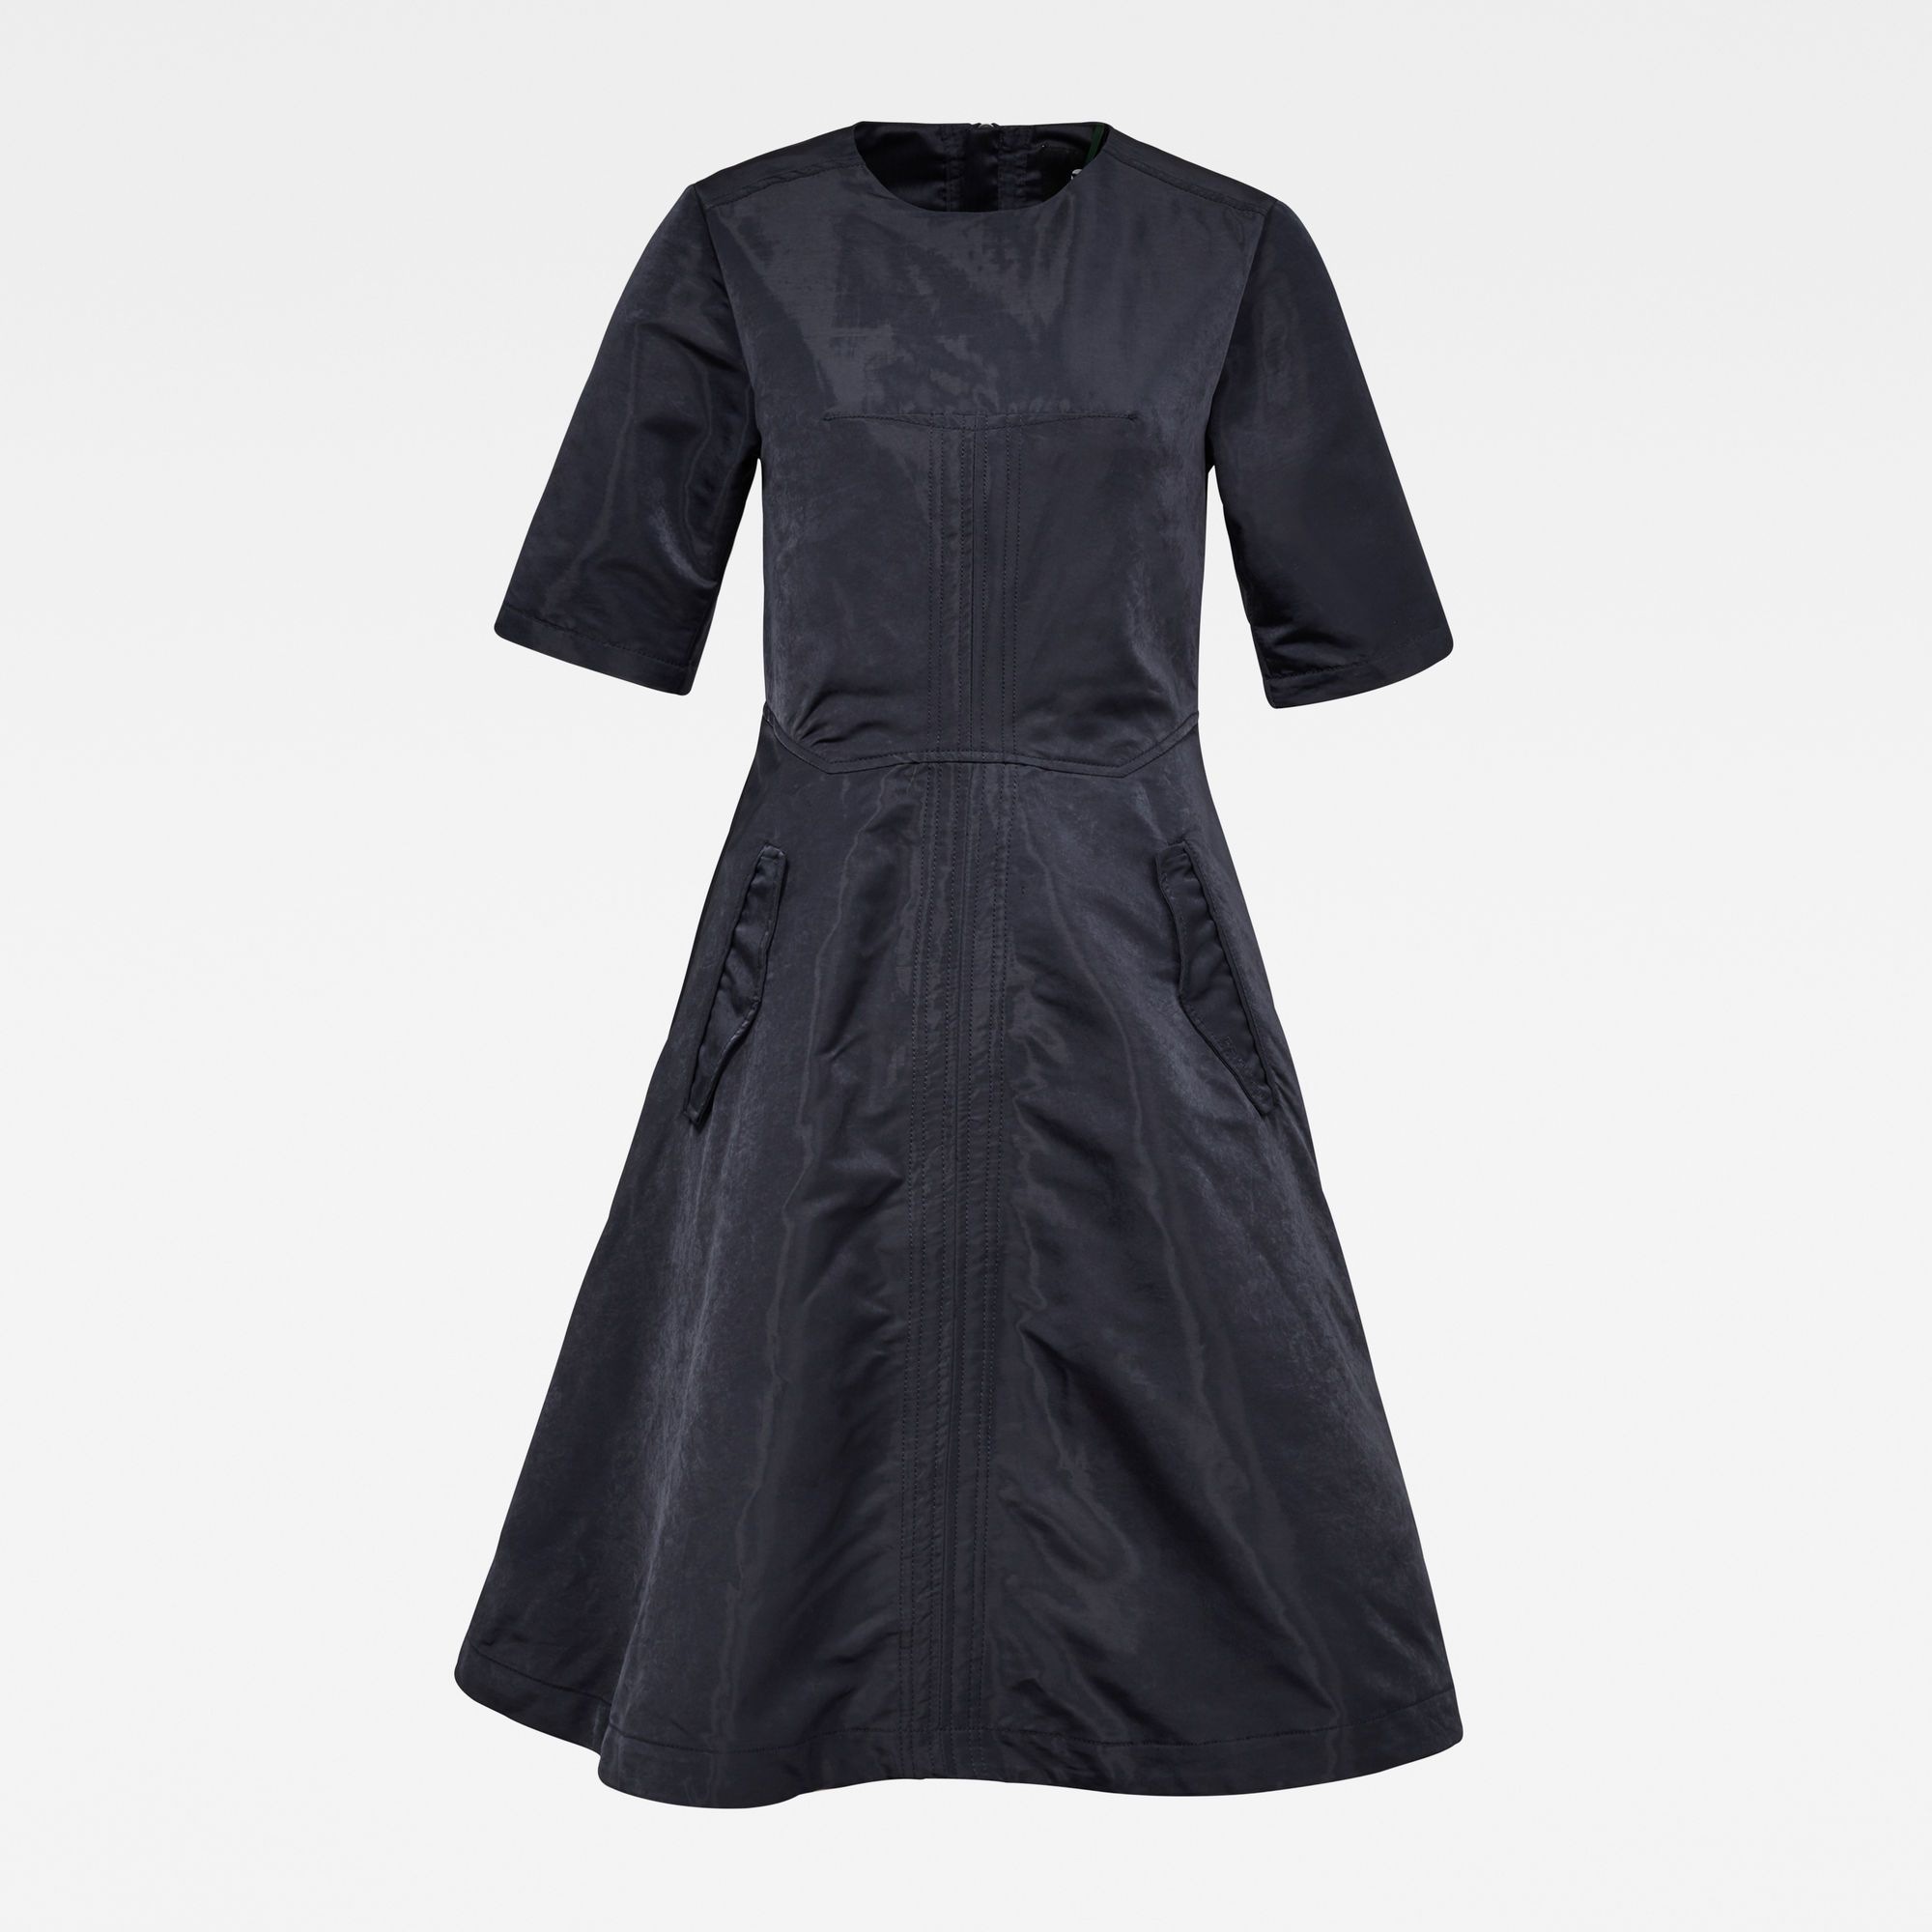 G-Star RAW Dames Fit and Flare Jurk Donkerblauw